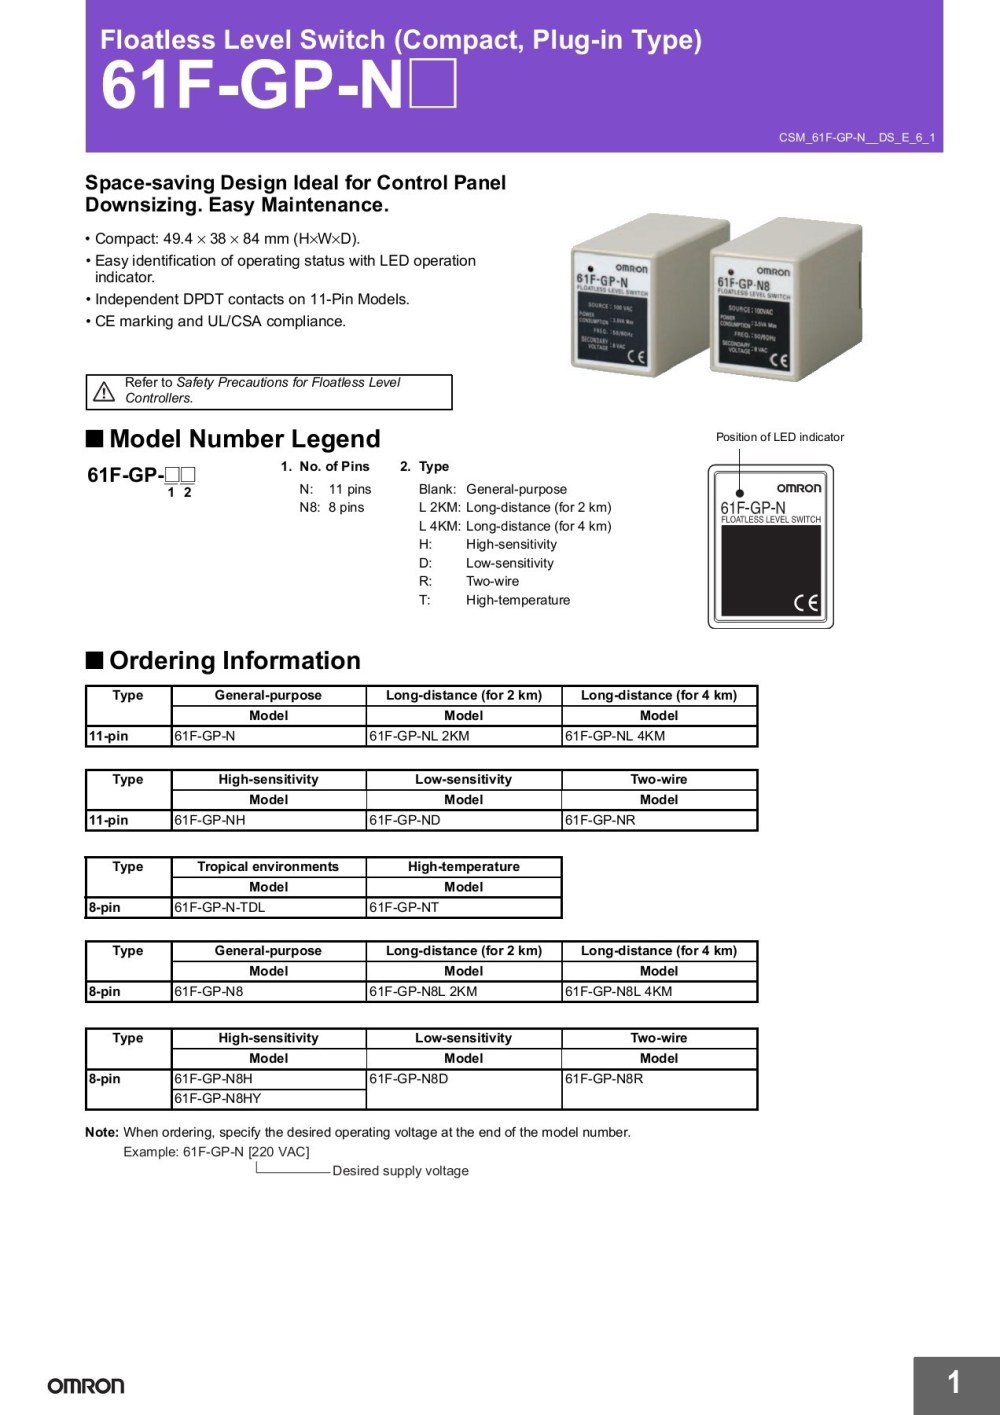 medium resolution of floatless level switch compact plug in type 61f gp n pages 1 15 text version fliphtml5